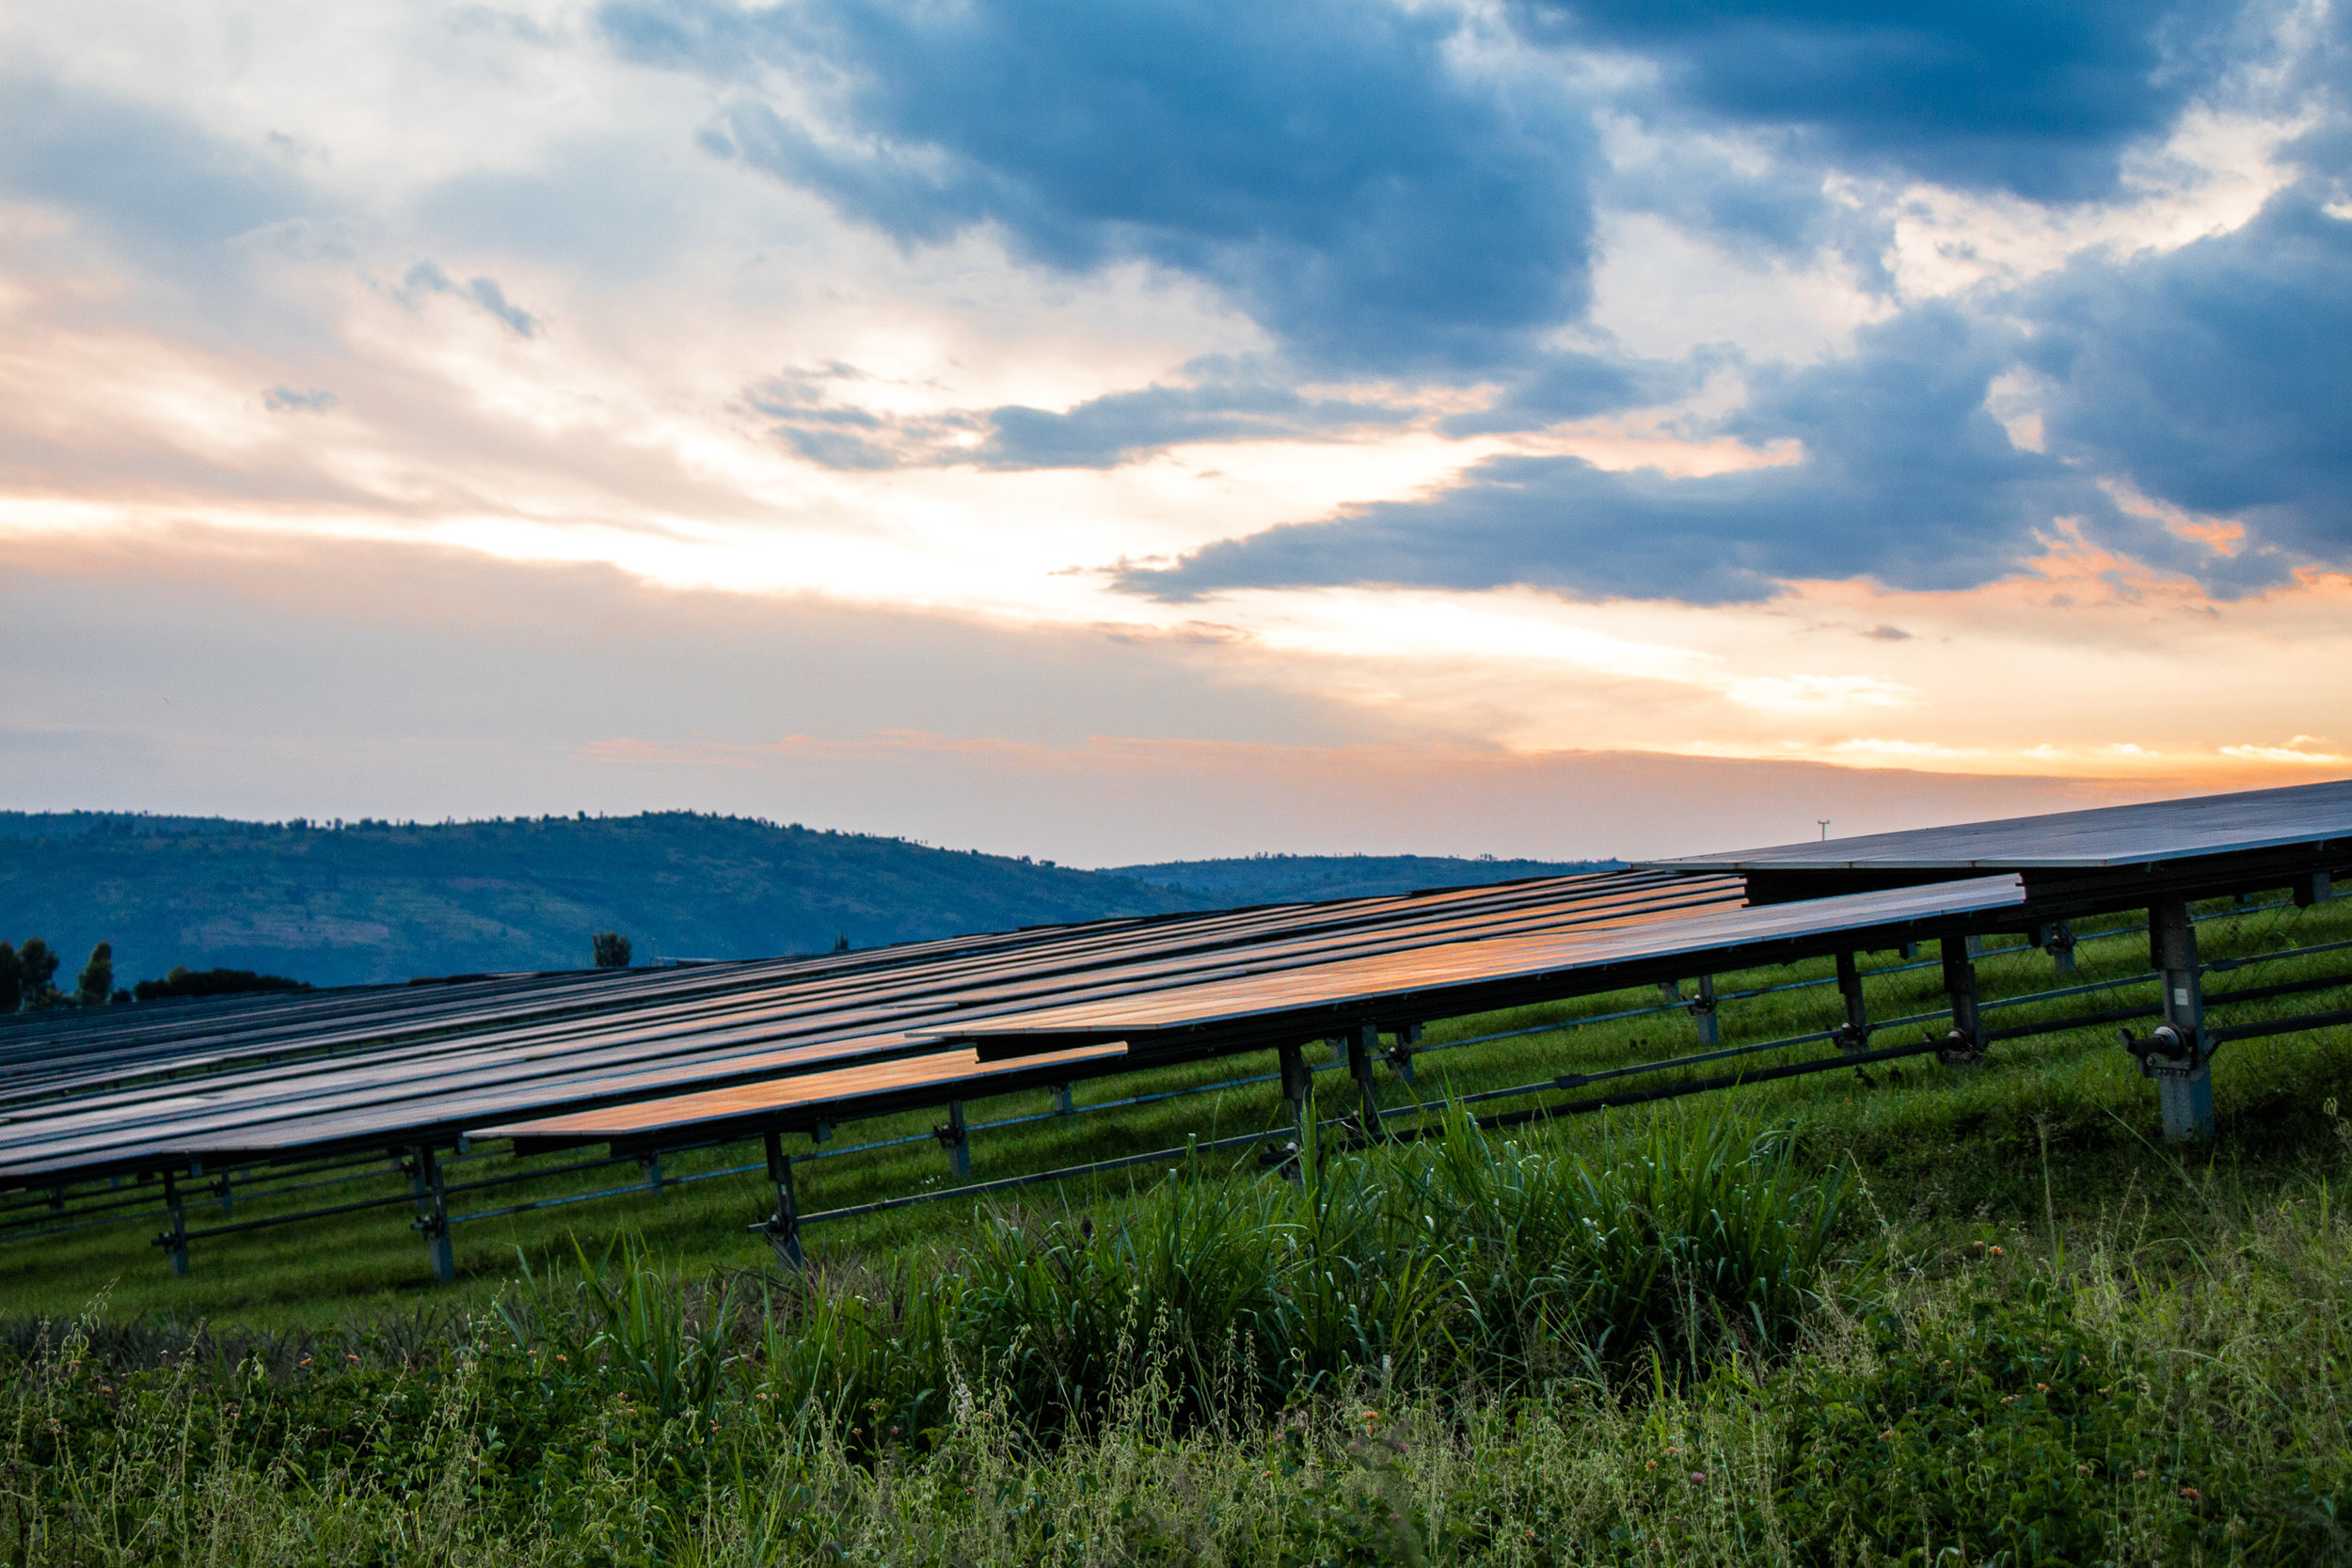 Rwanda hosts East Africa's largest commercial solar field, next to Agahozo Shalom Youth Village.